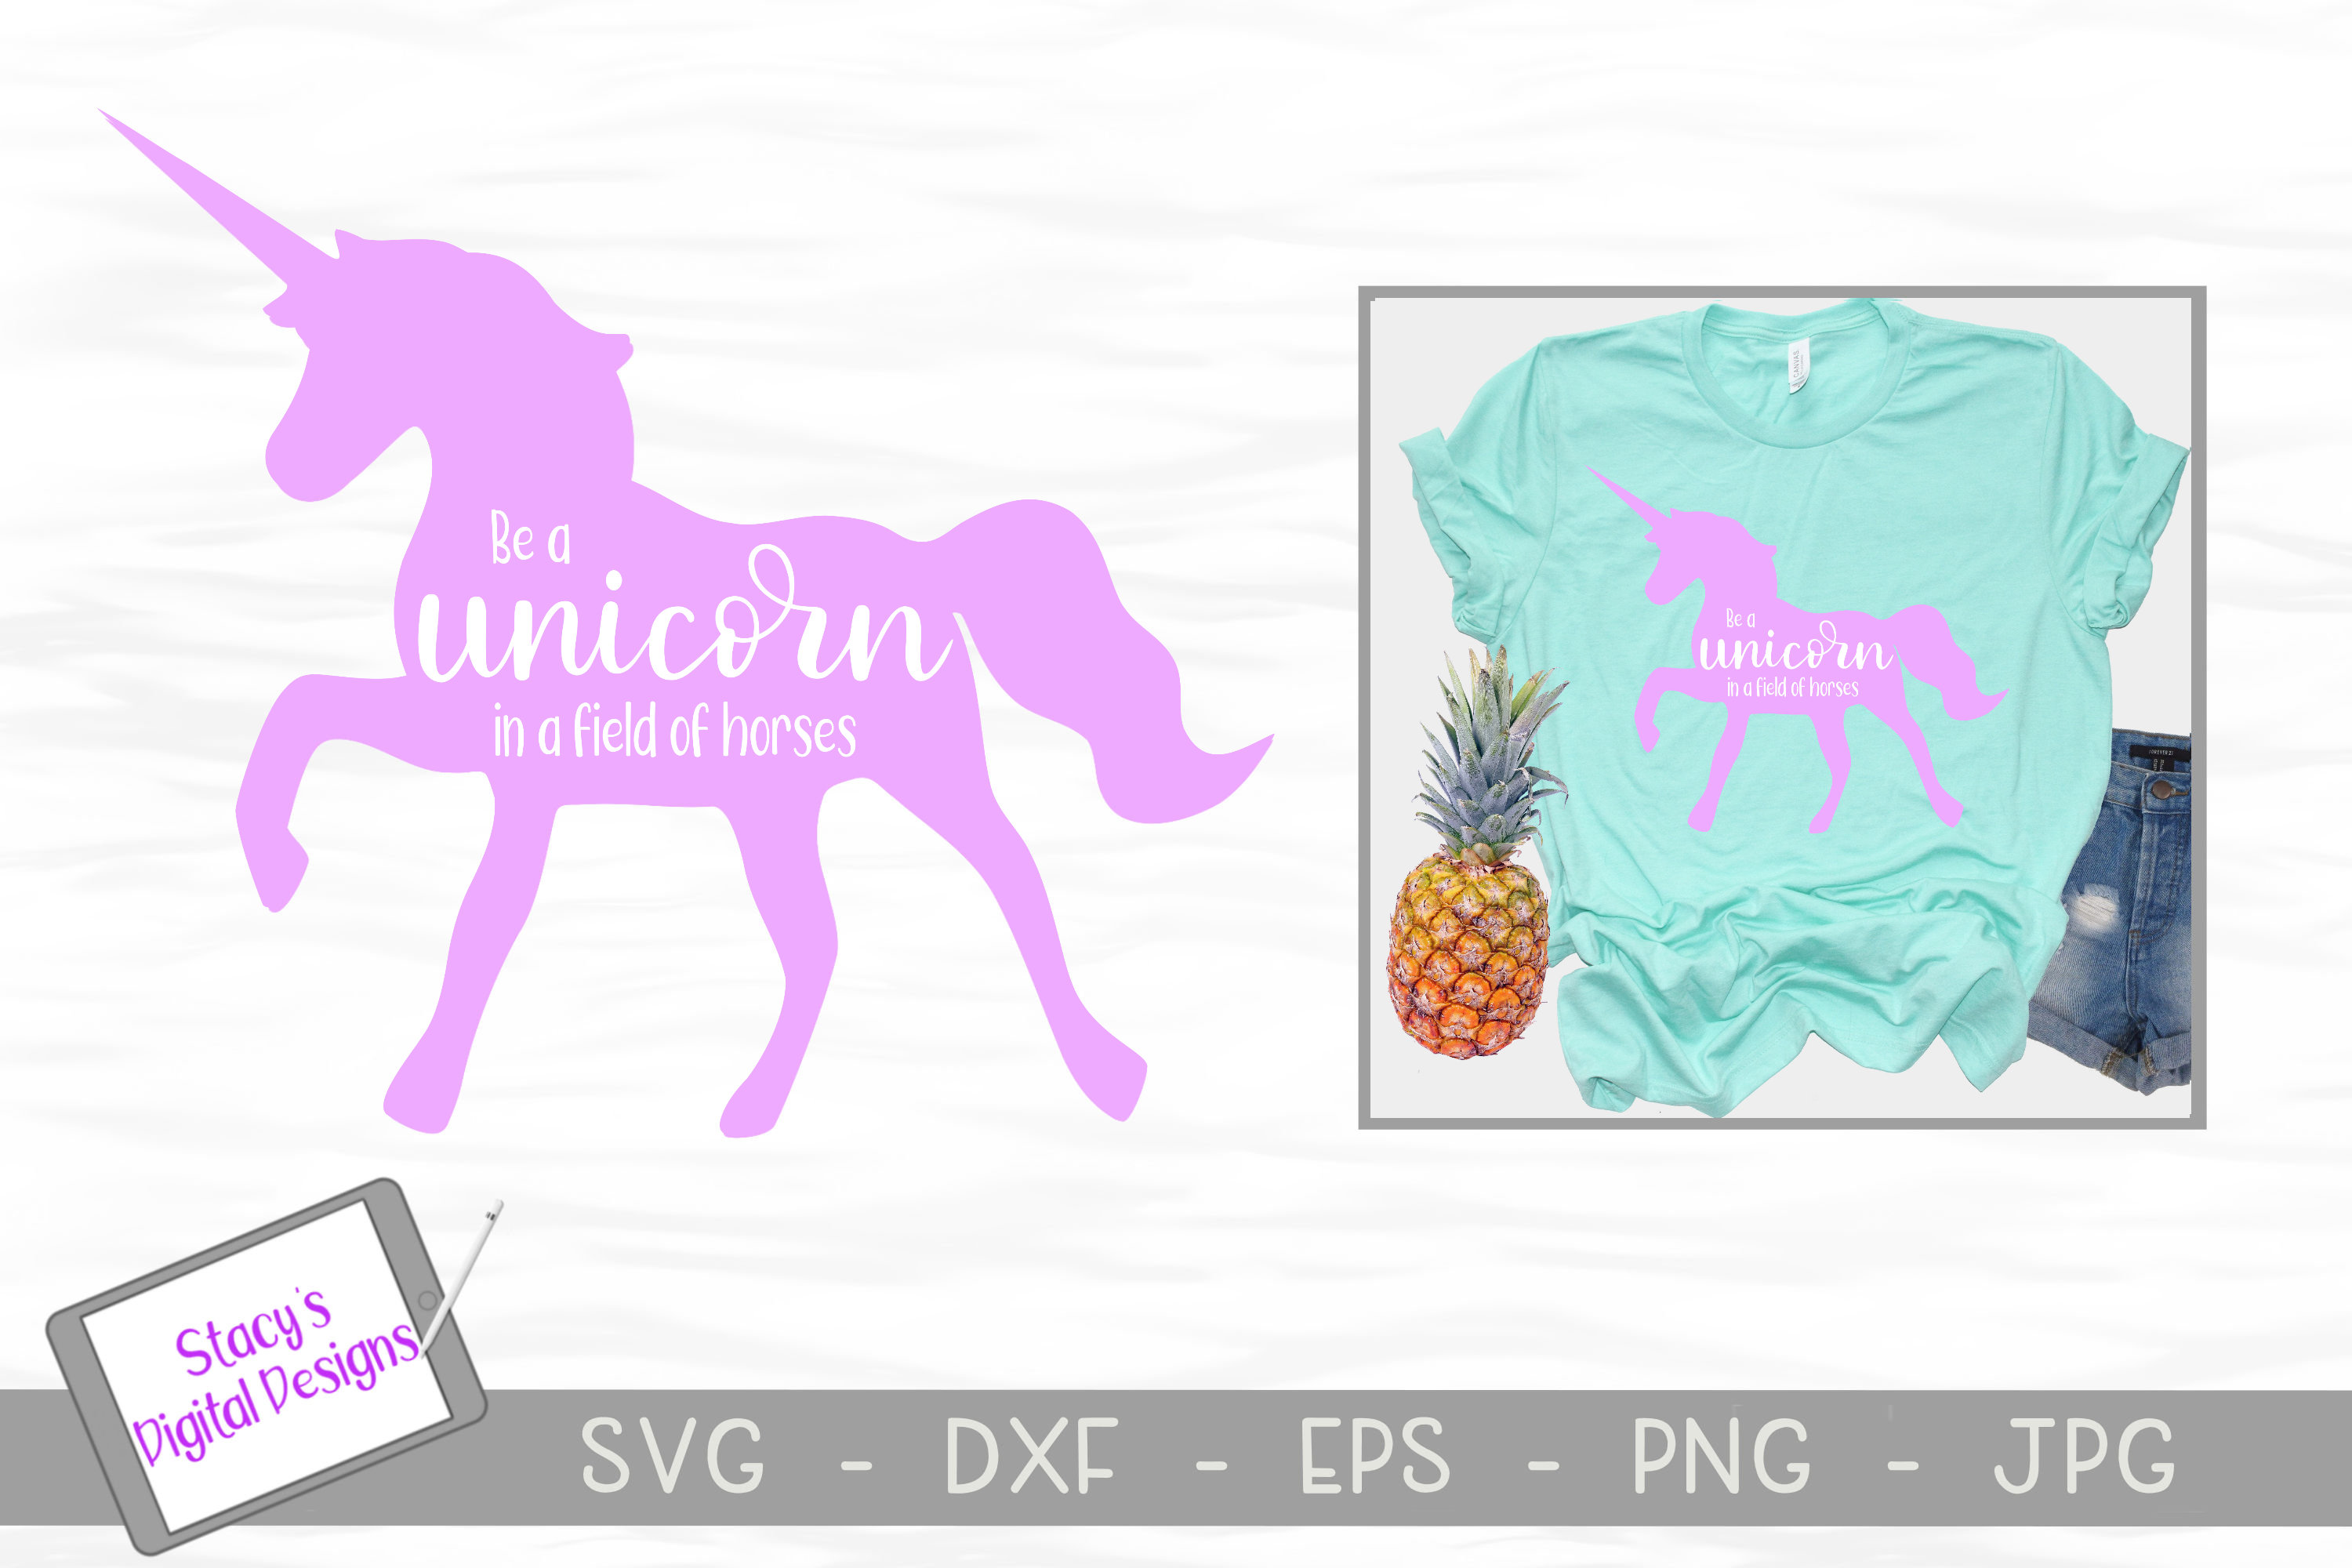 Download Free Be A Unicorn In A Field Of Horses Graphic By for Cricut Explore, Silhouette and other cutting machines.